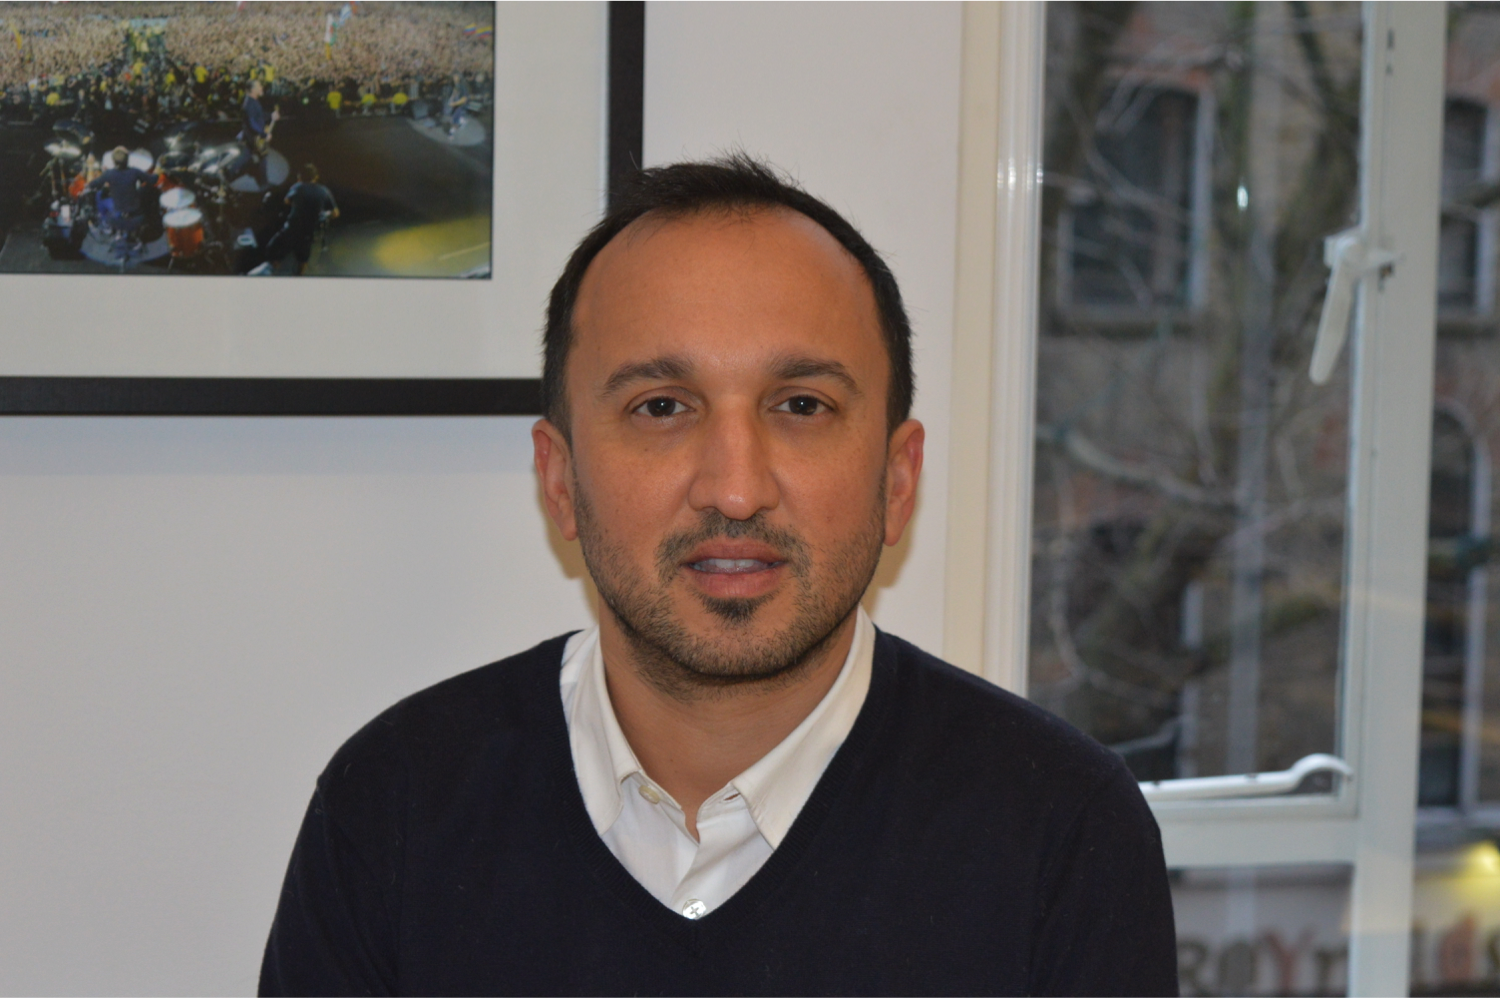 Darren Khan, UK & European MD, Genero